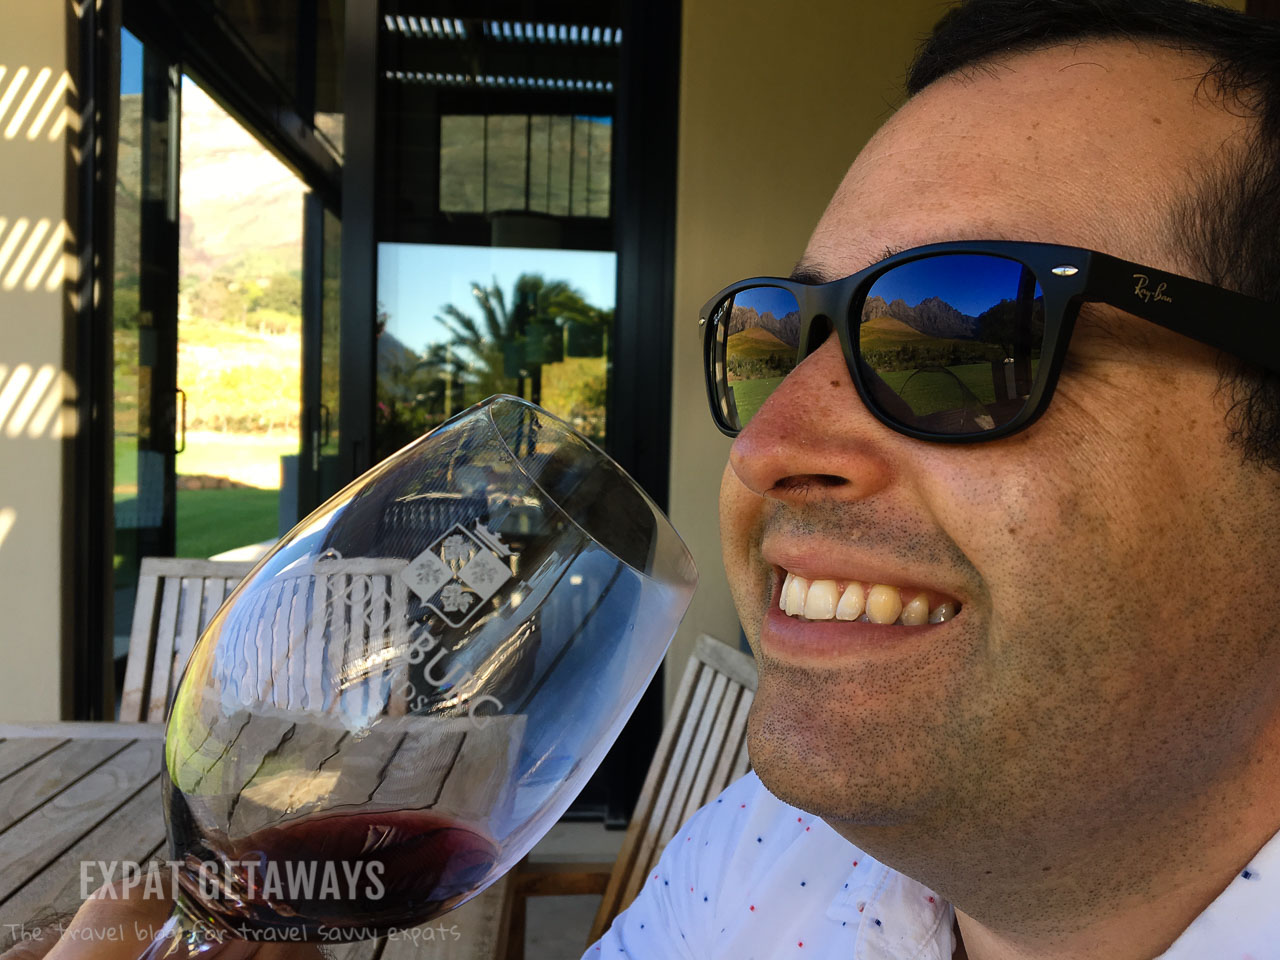 Andrew enjoying a glass of red wine in the Franschhoek wine region just outsite of Cape Town. Expat Getaways One Week in Cape Town, South Africa.